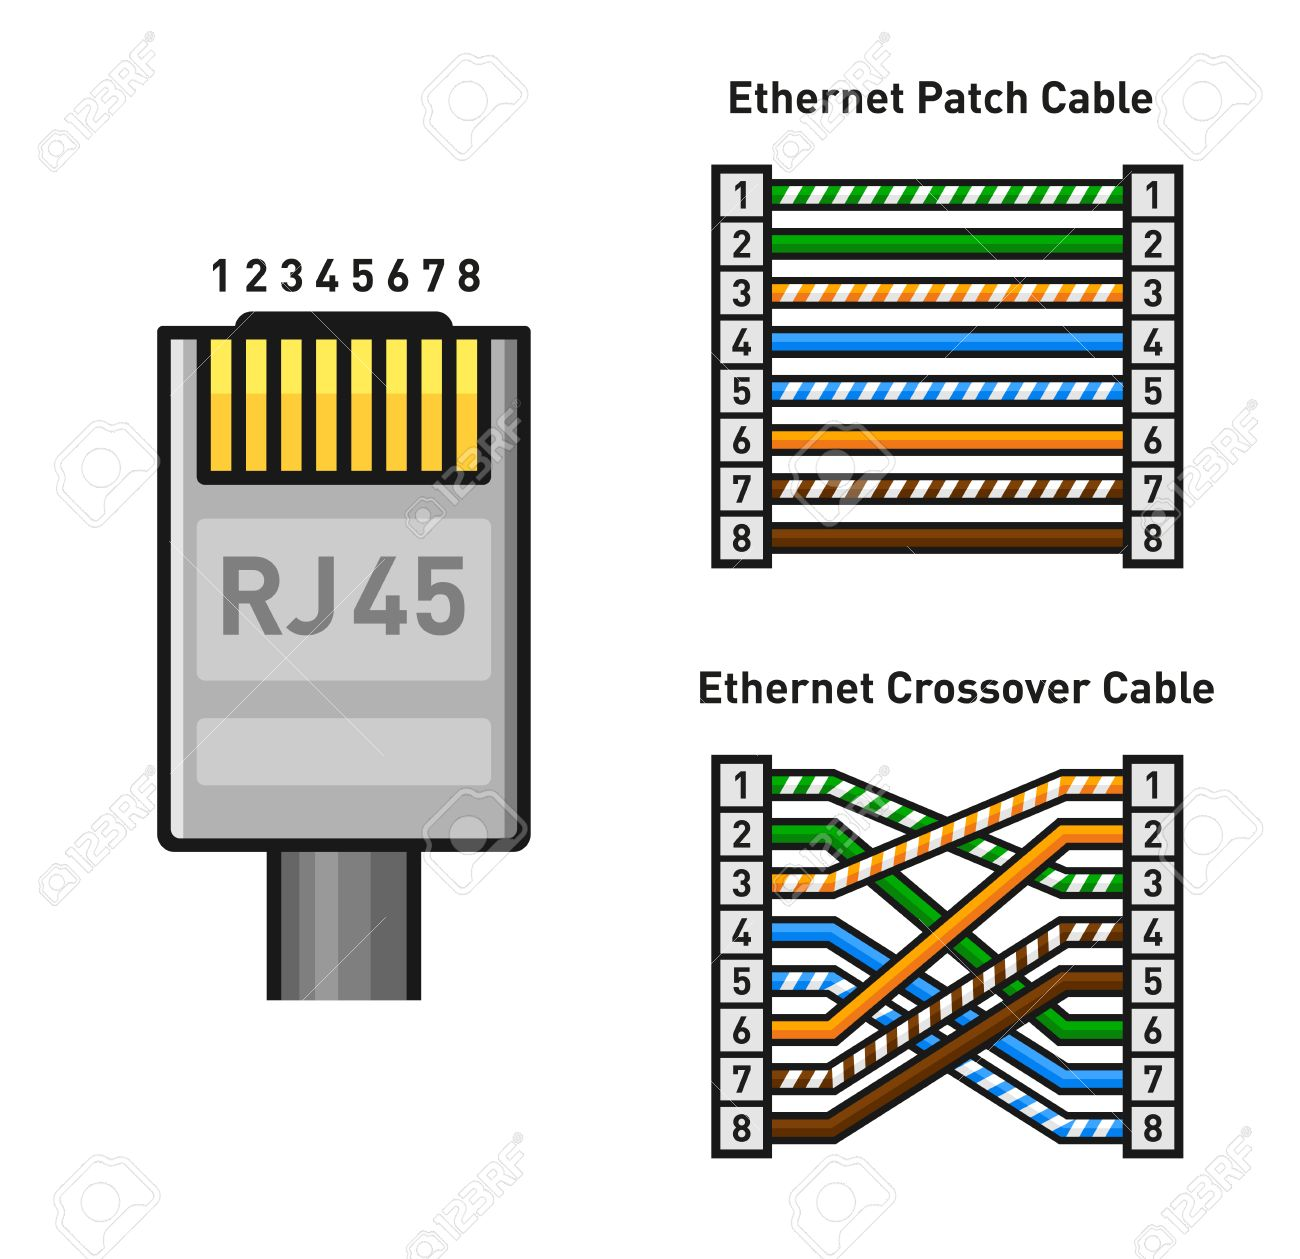 T1 Wiring Diagram Rj 48c Electrical 48 Jack Free Download Diagrams Schematics Pinout